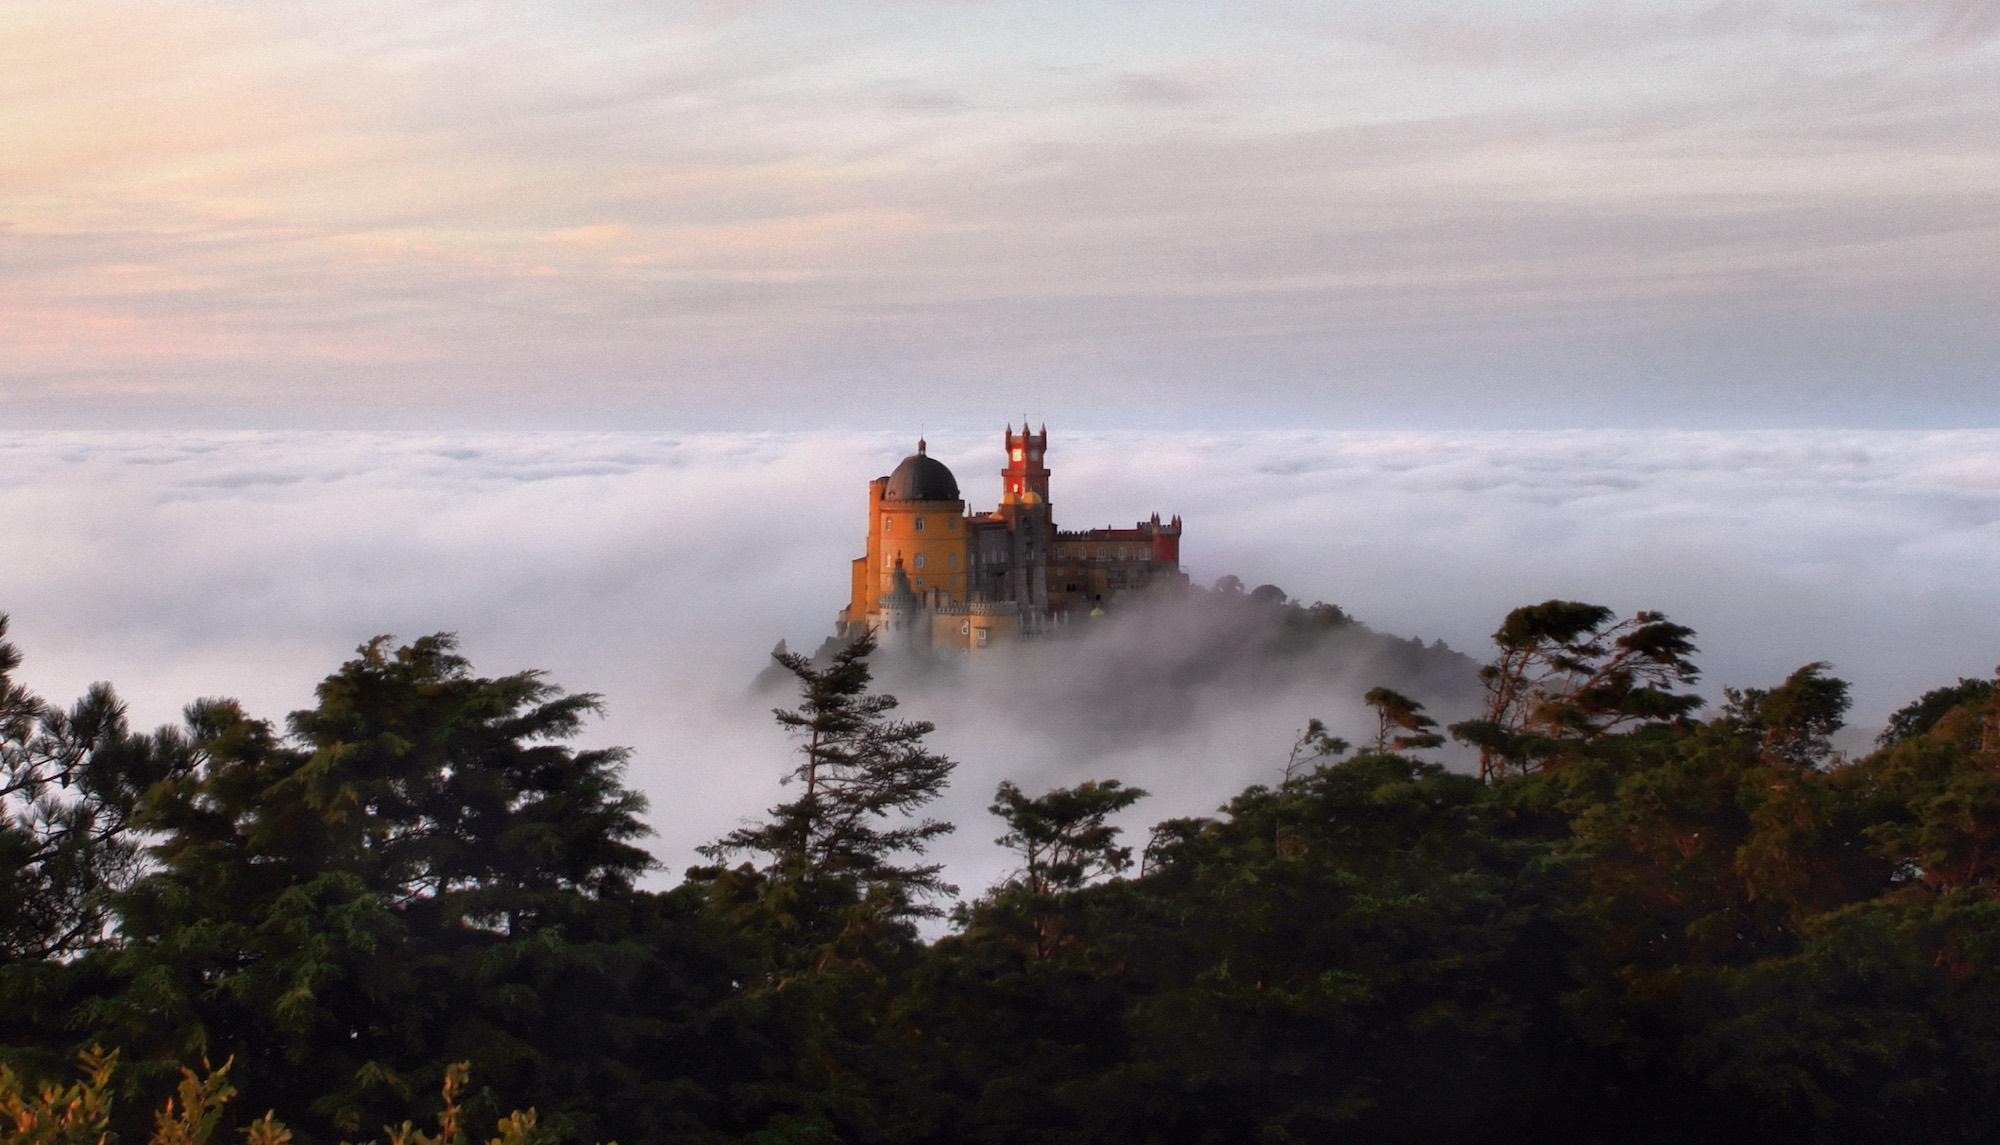 The traveller comes upon the Palace of Pena as if it were something from a dream, faithful to every romantic notion of the fairy castle. – © PSML / EMIGUS